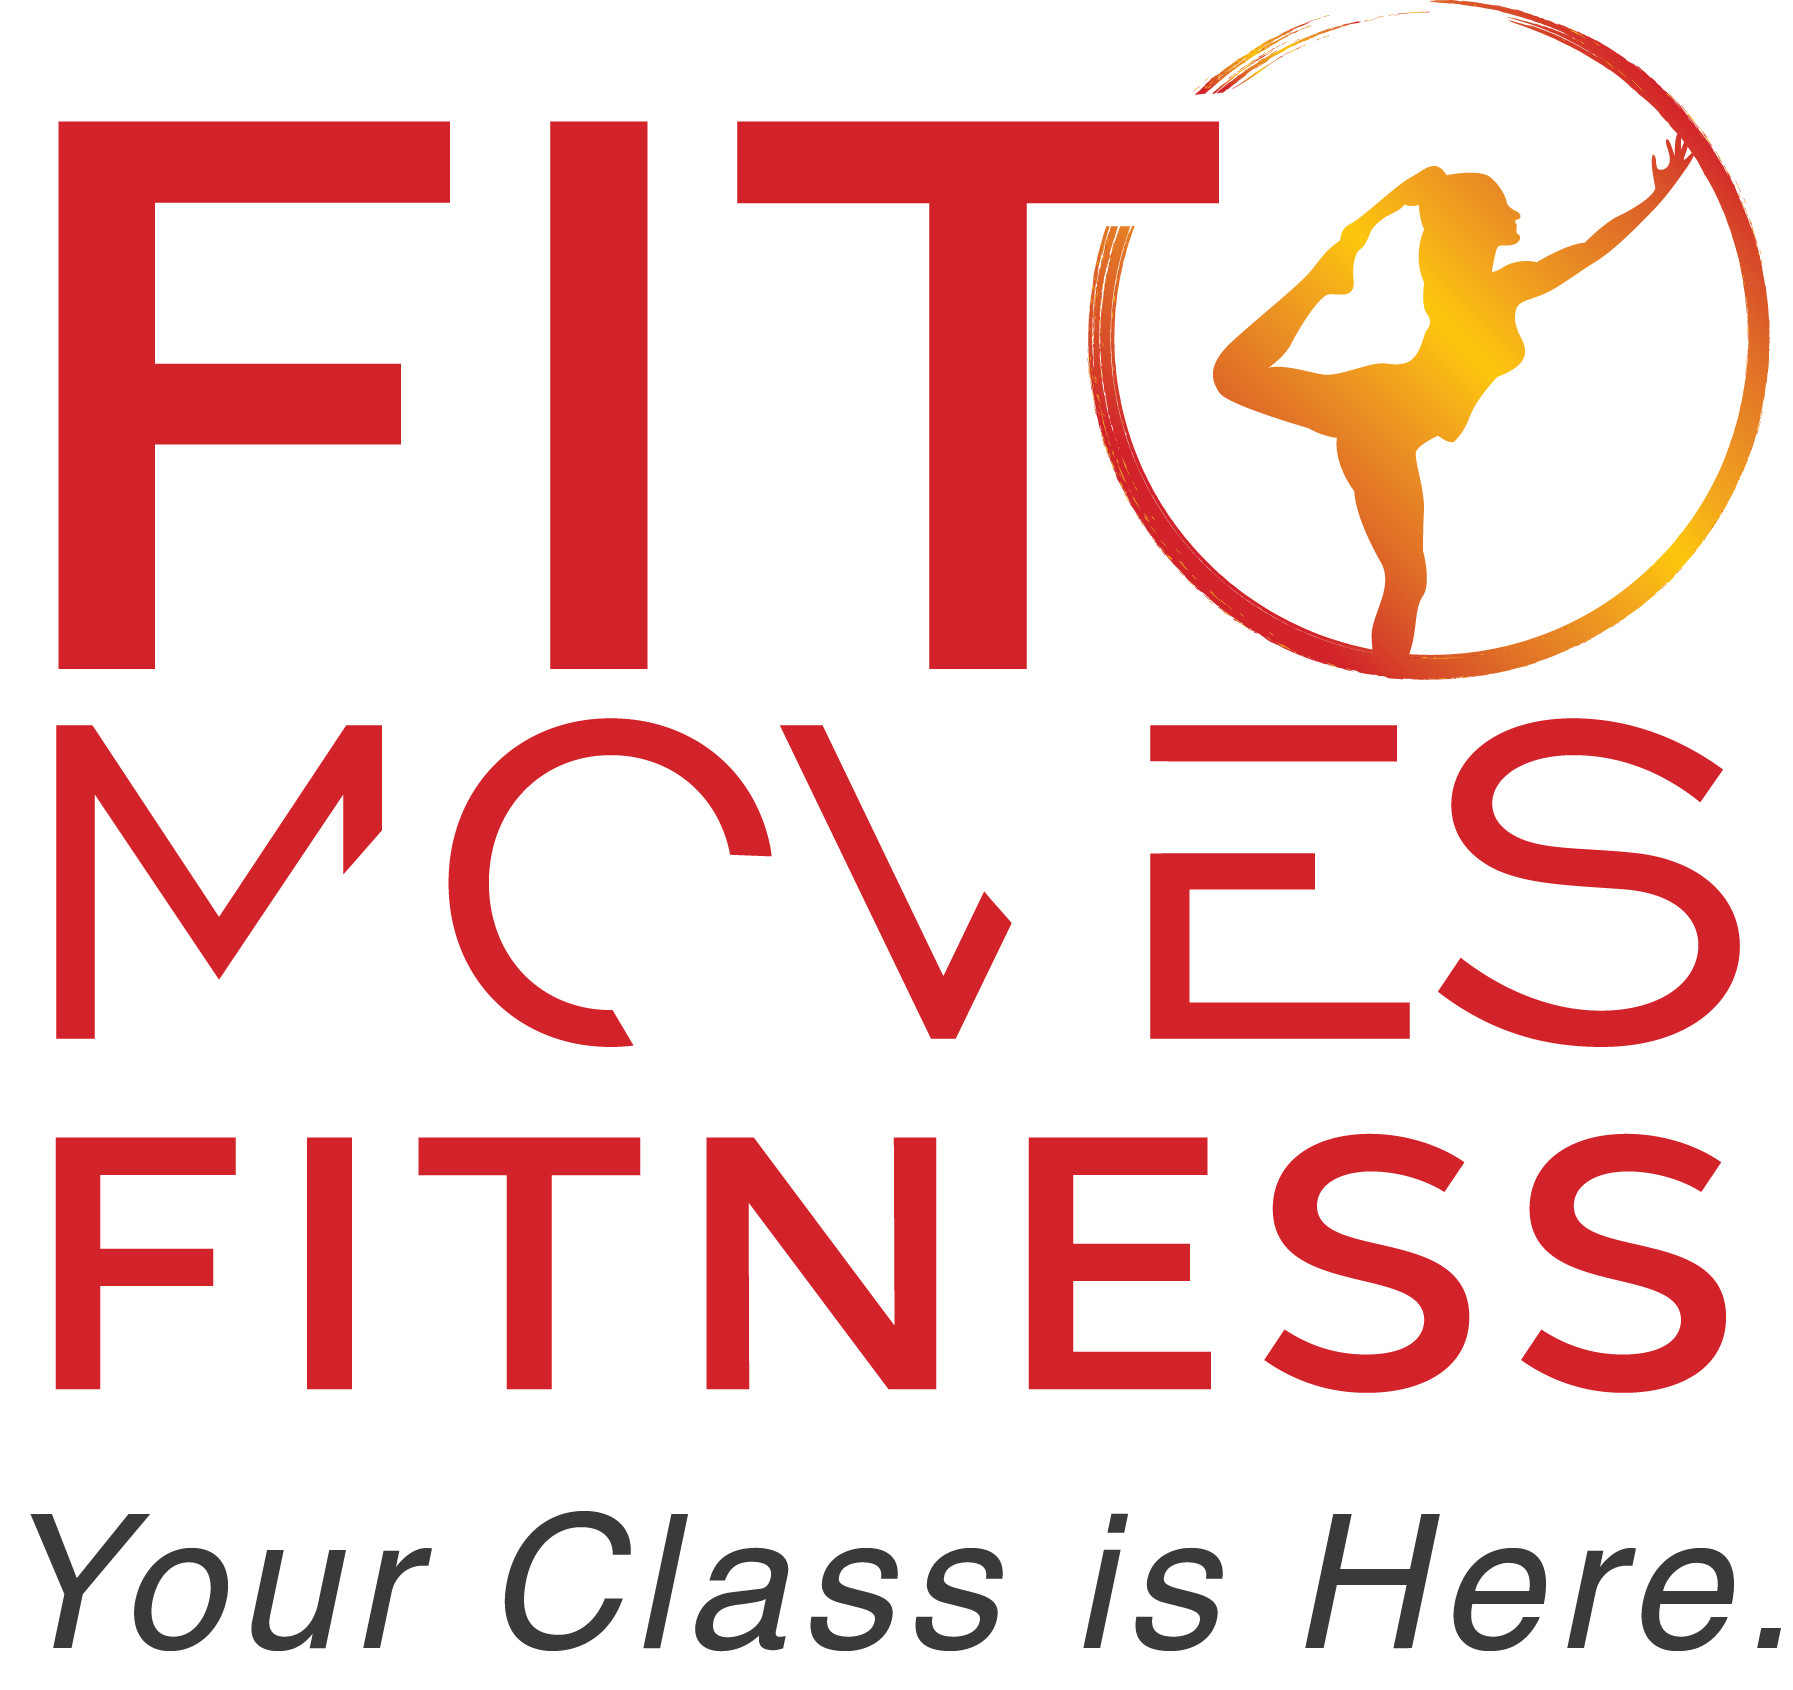 Fit Moves Fitness Logo - Your Class is Here!